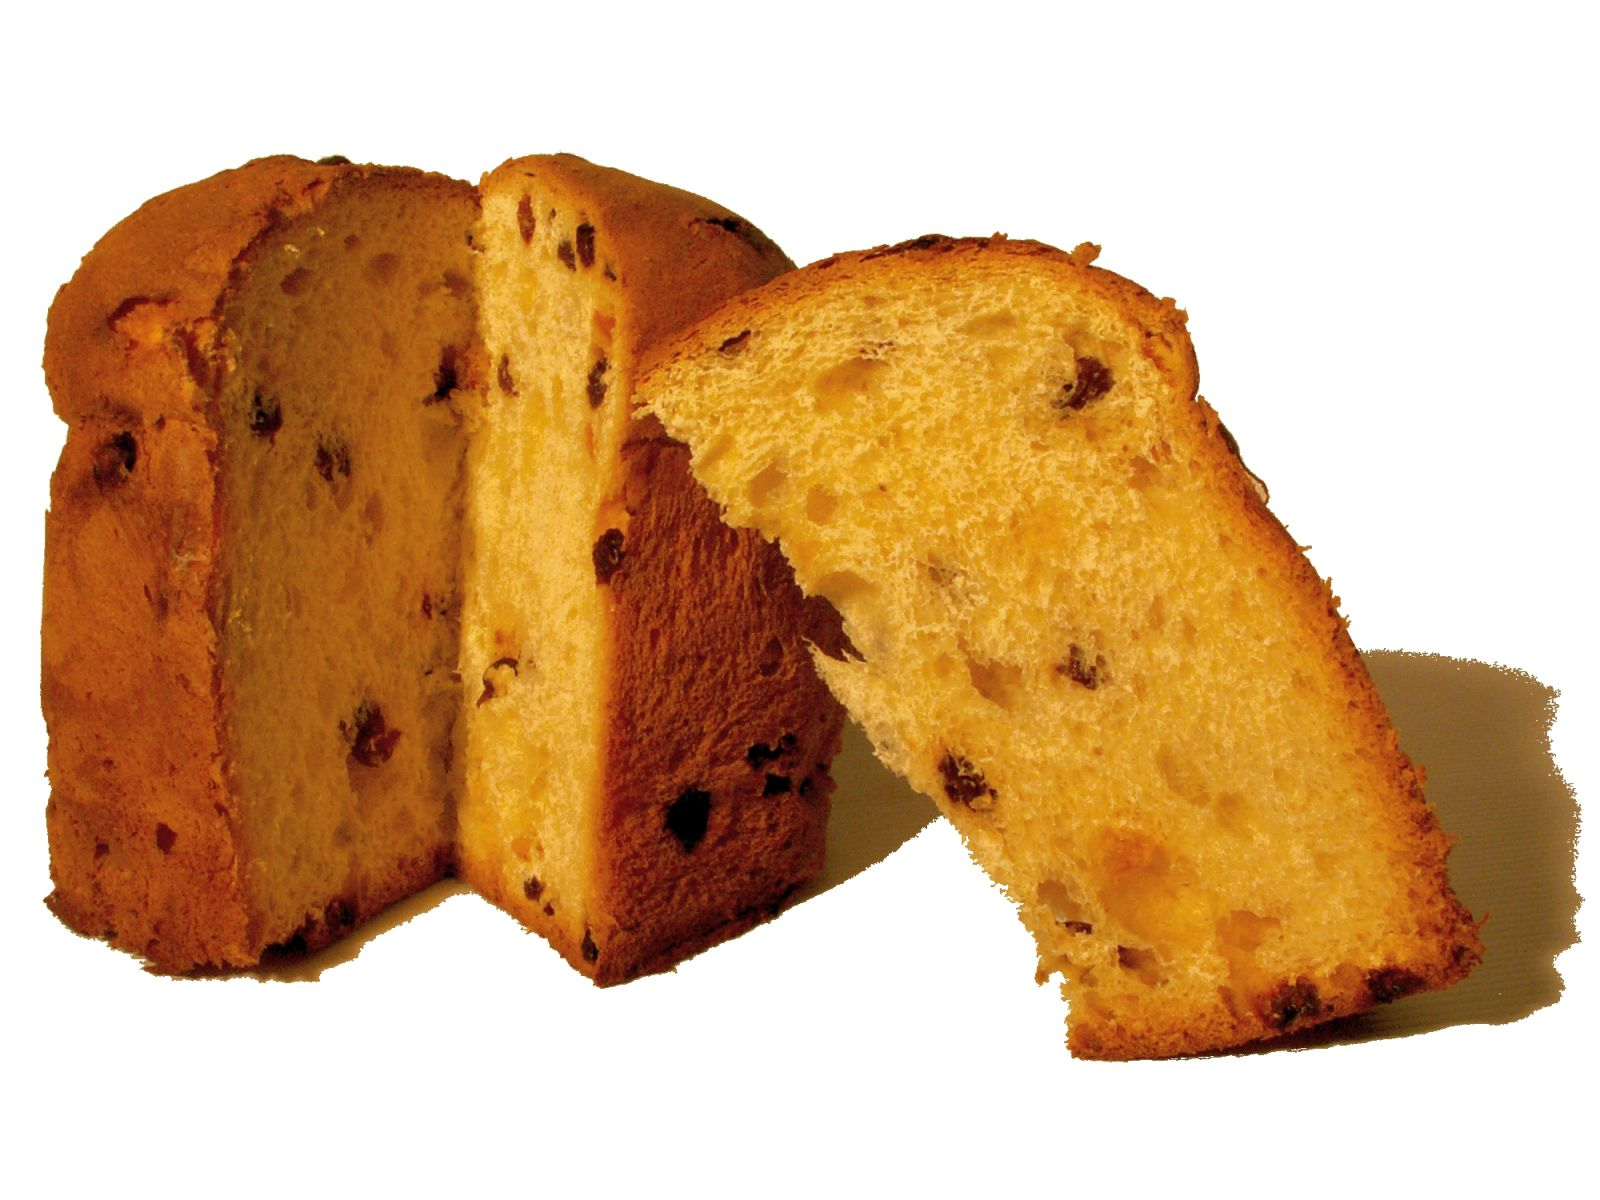 Eating Panettone